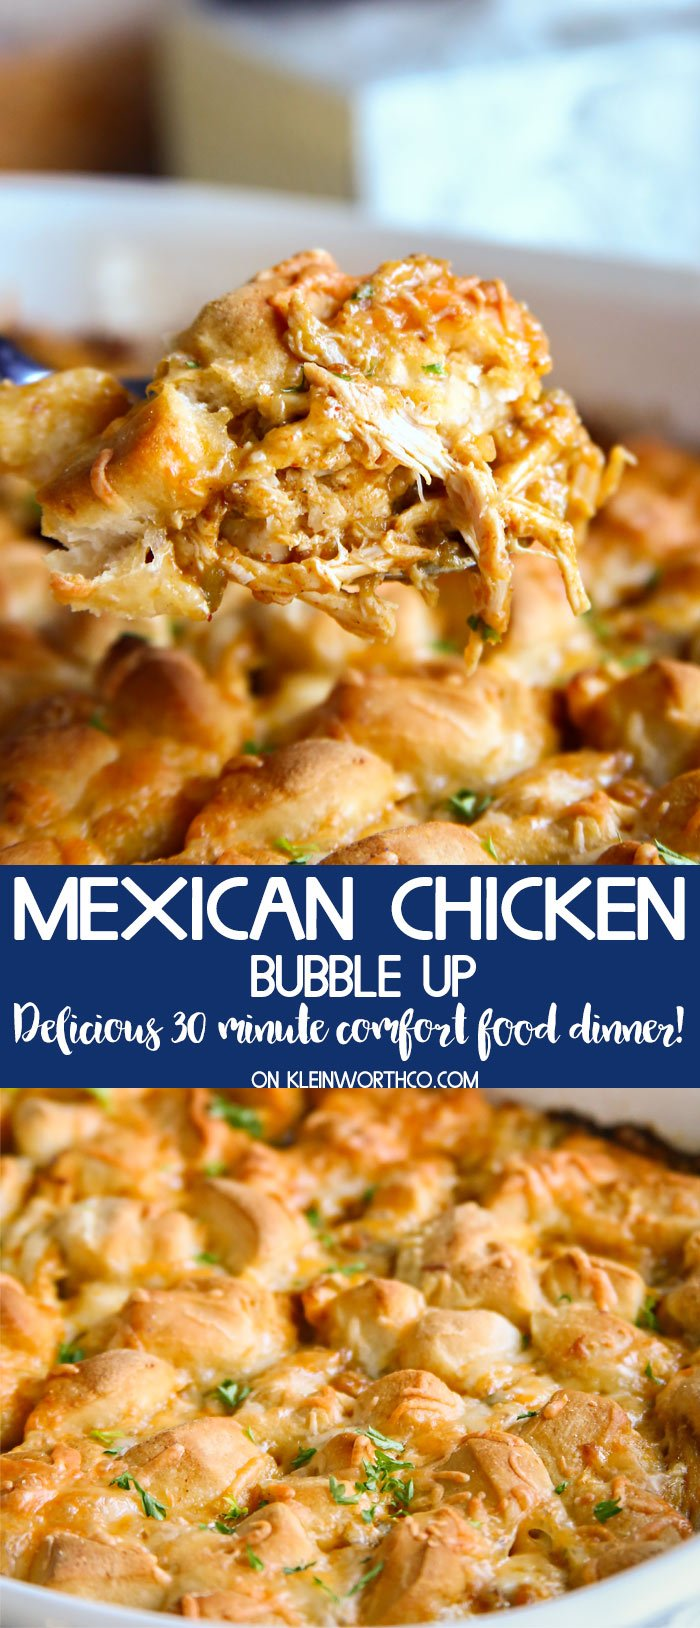 Mexican Chicken Bubble Up Casserole recipe